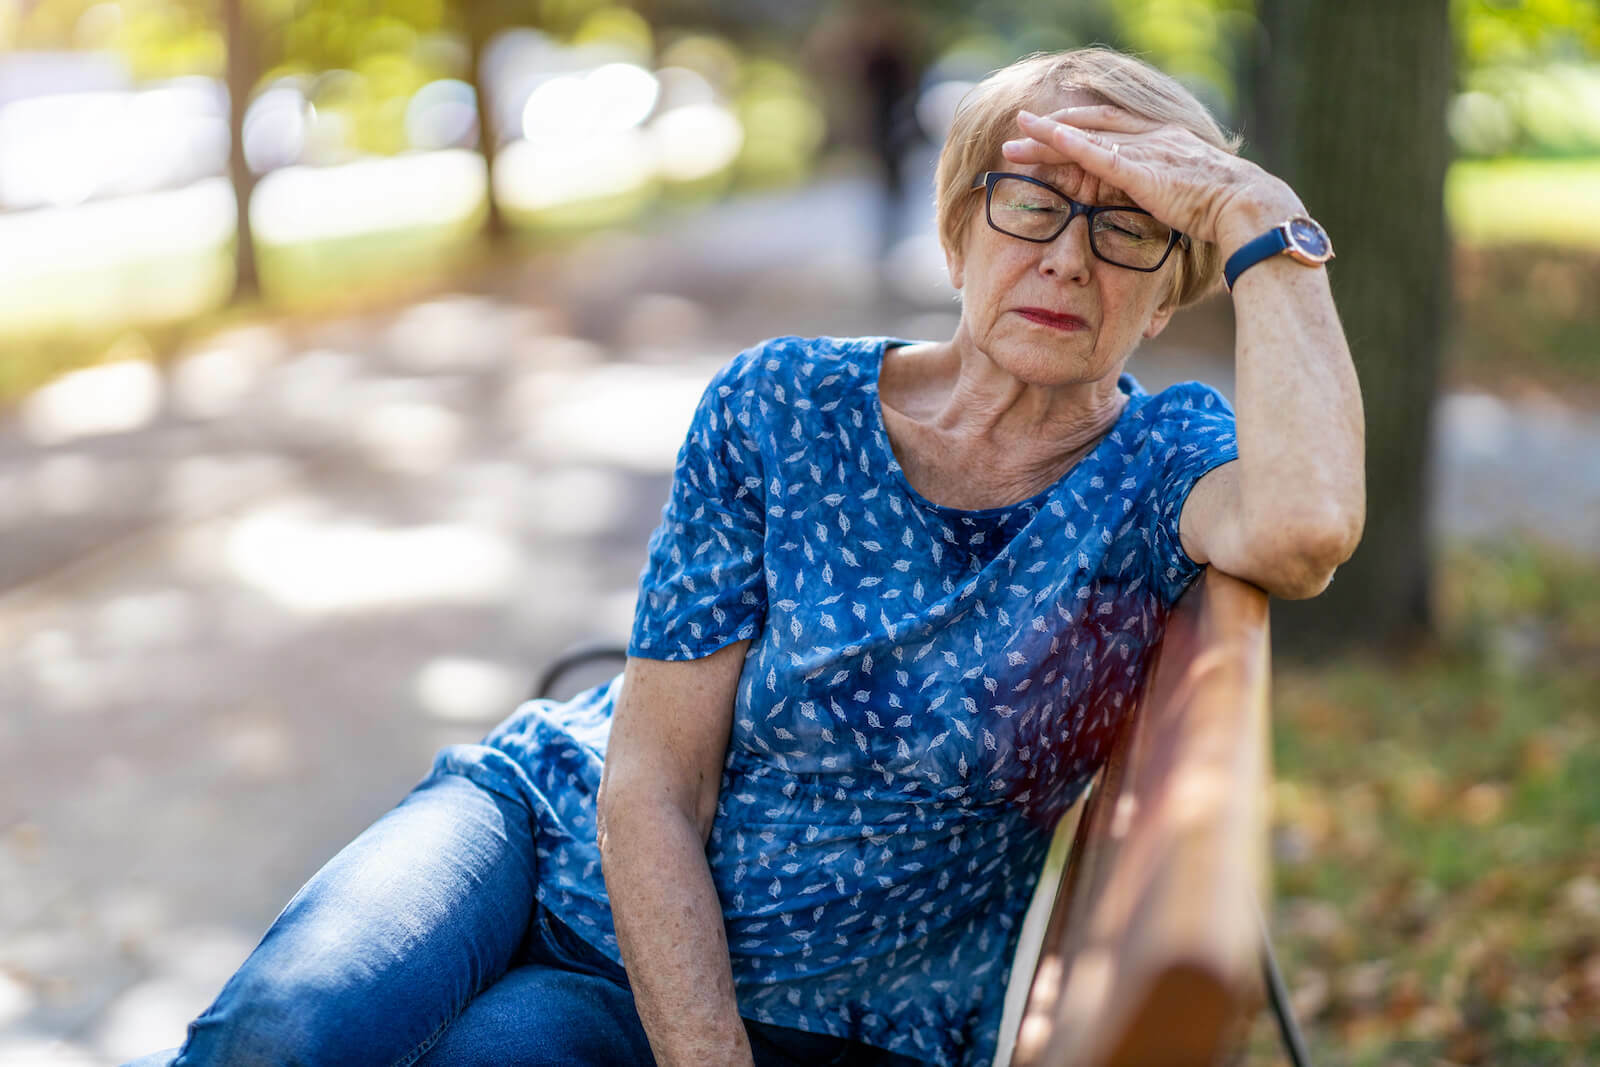 How to cool down: Elderly woman suffering from a headache